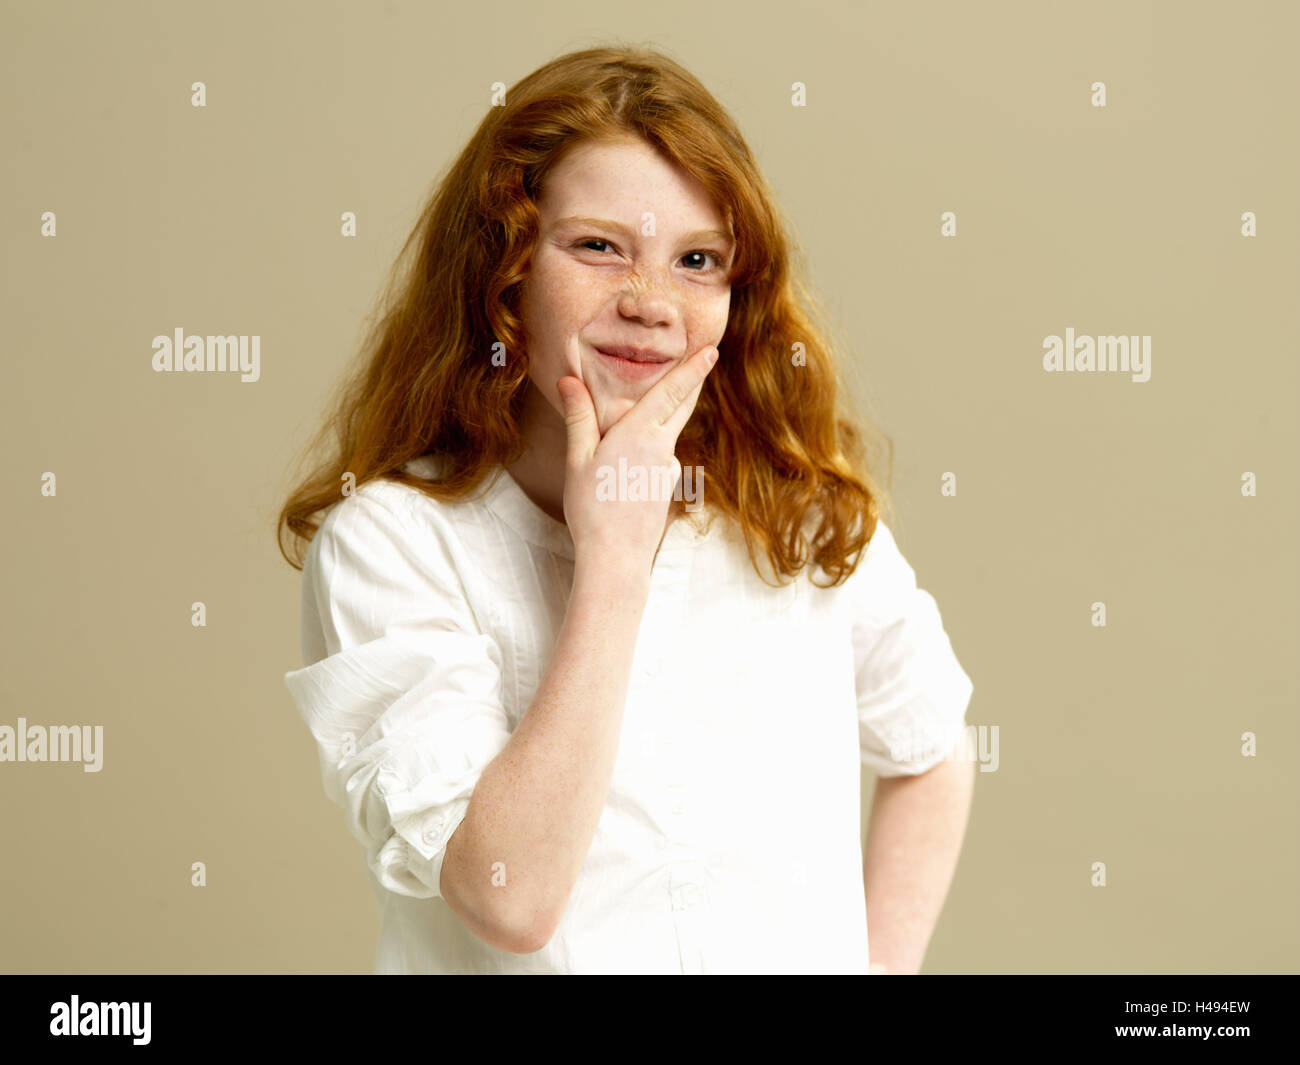 Girls, red-haired, gesture, thoughtfully, portrait, child, long-haired, blouse, shirt, freckles, hand, chin, brood, - Stock Image